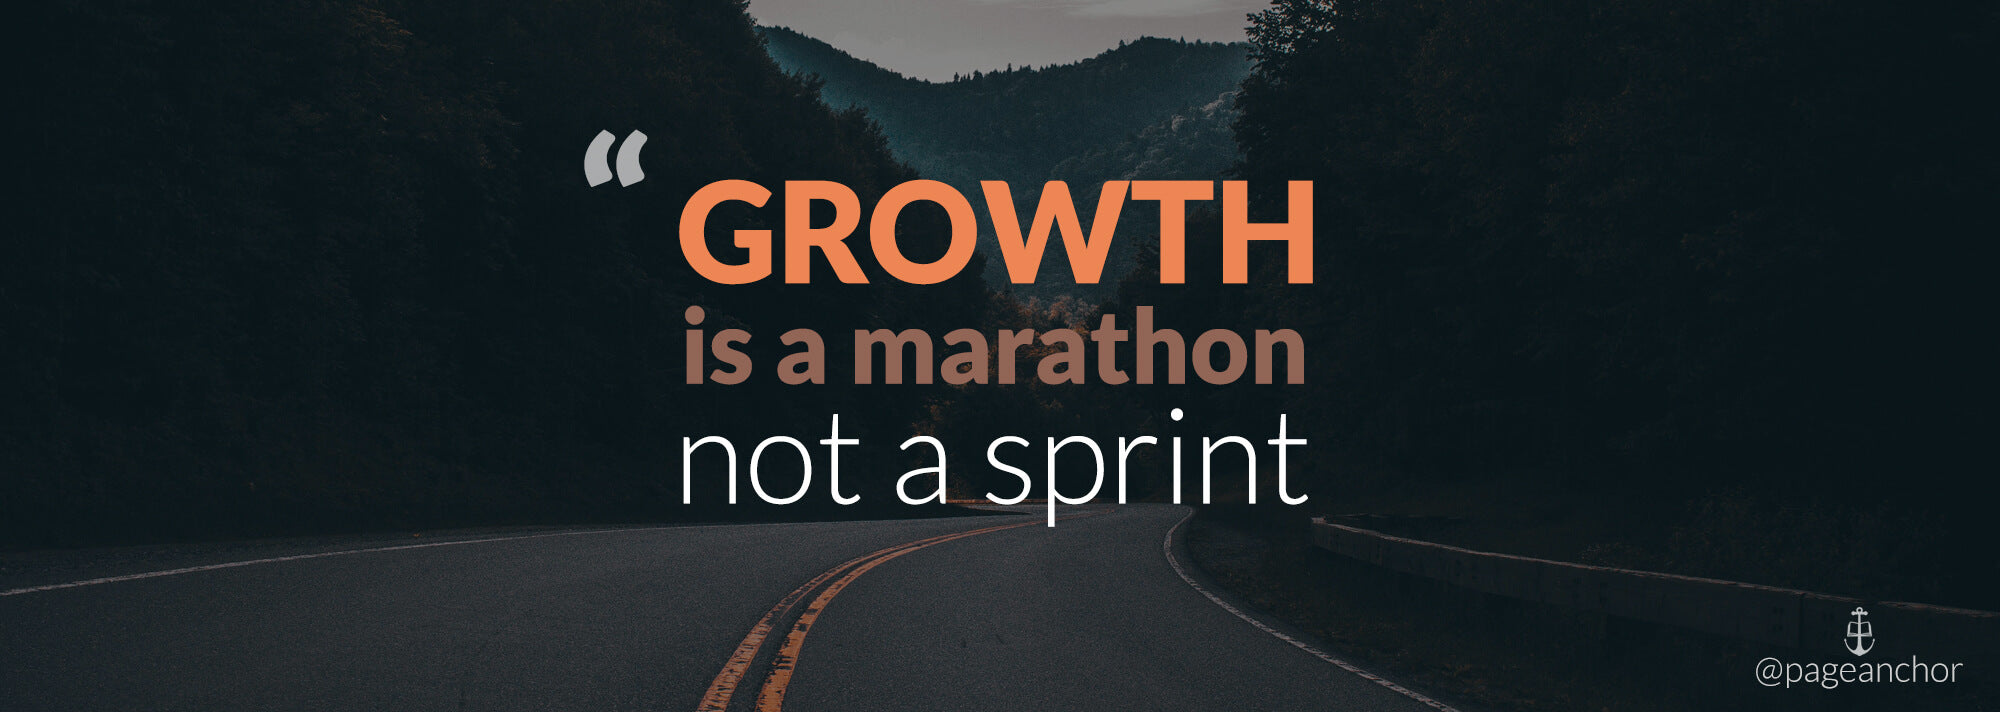 growth quote image